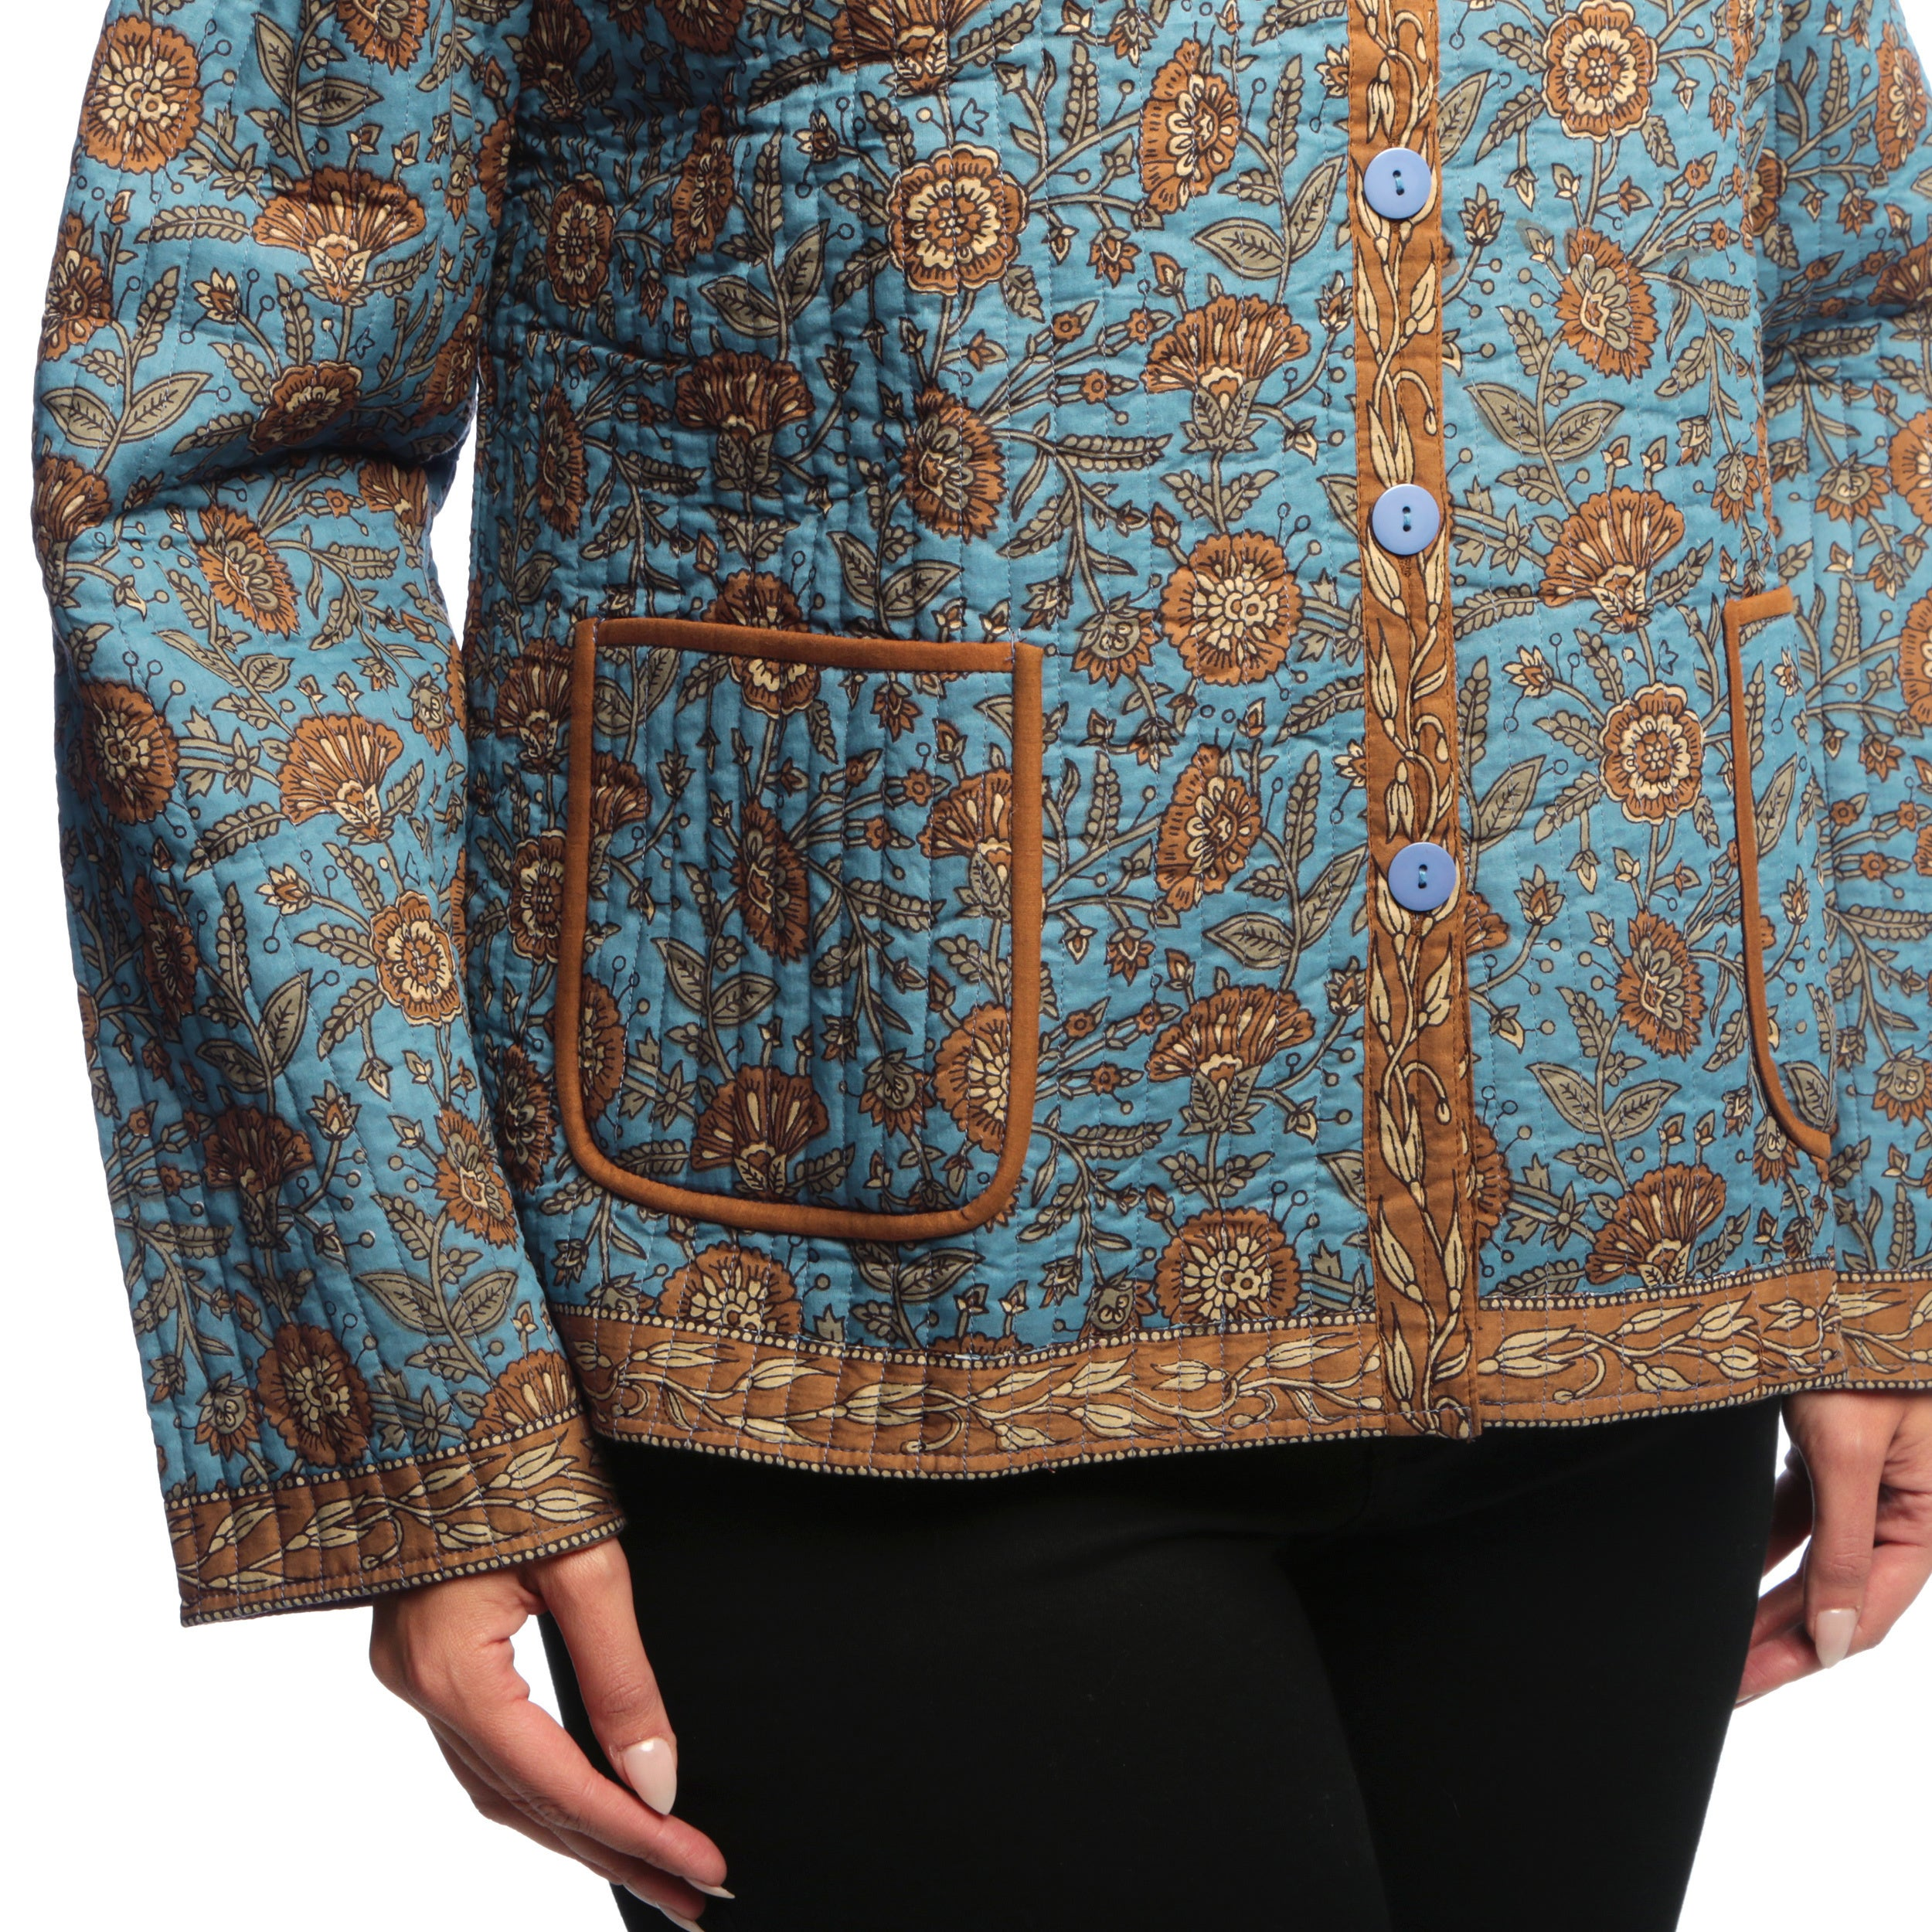 d63a036fec9 Shop La Cera Women s Plus Size Quilted Floral-Print Mandarin Collar Jacket  - Free Shipping Today - Overstock - 6394456